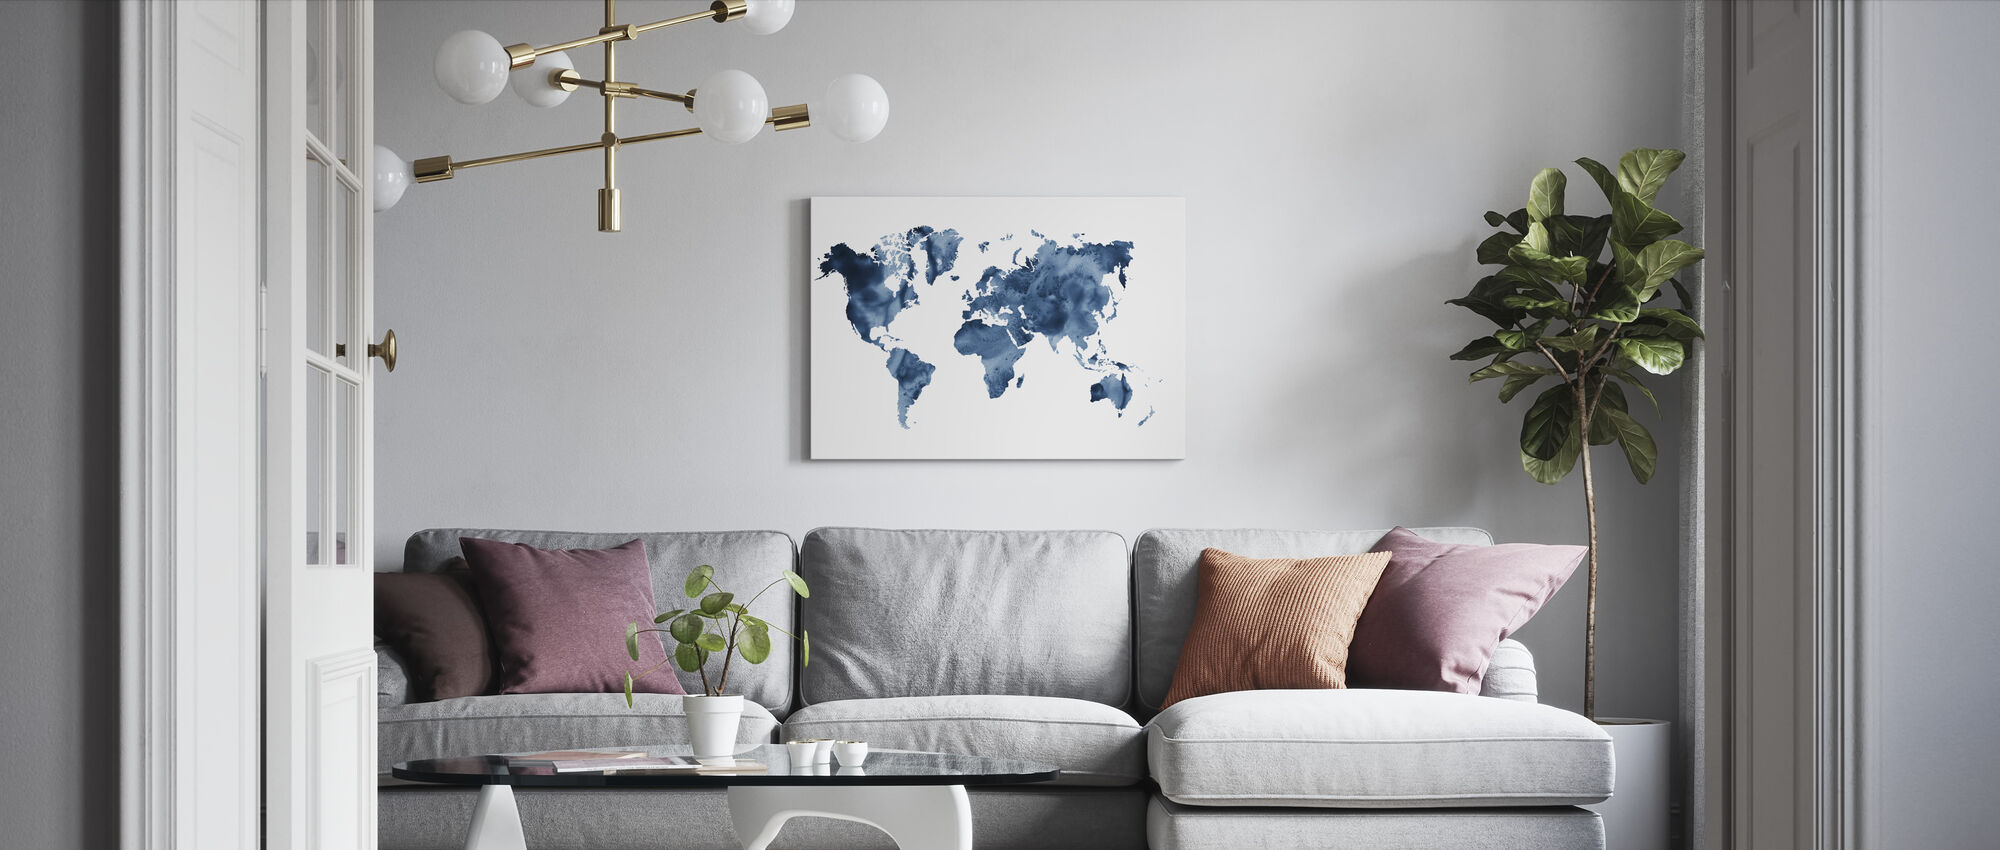 Watercolor World Navy Blue - Canvas print - Living Room